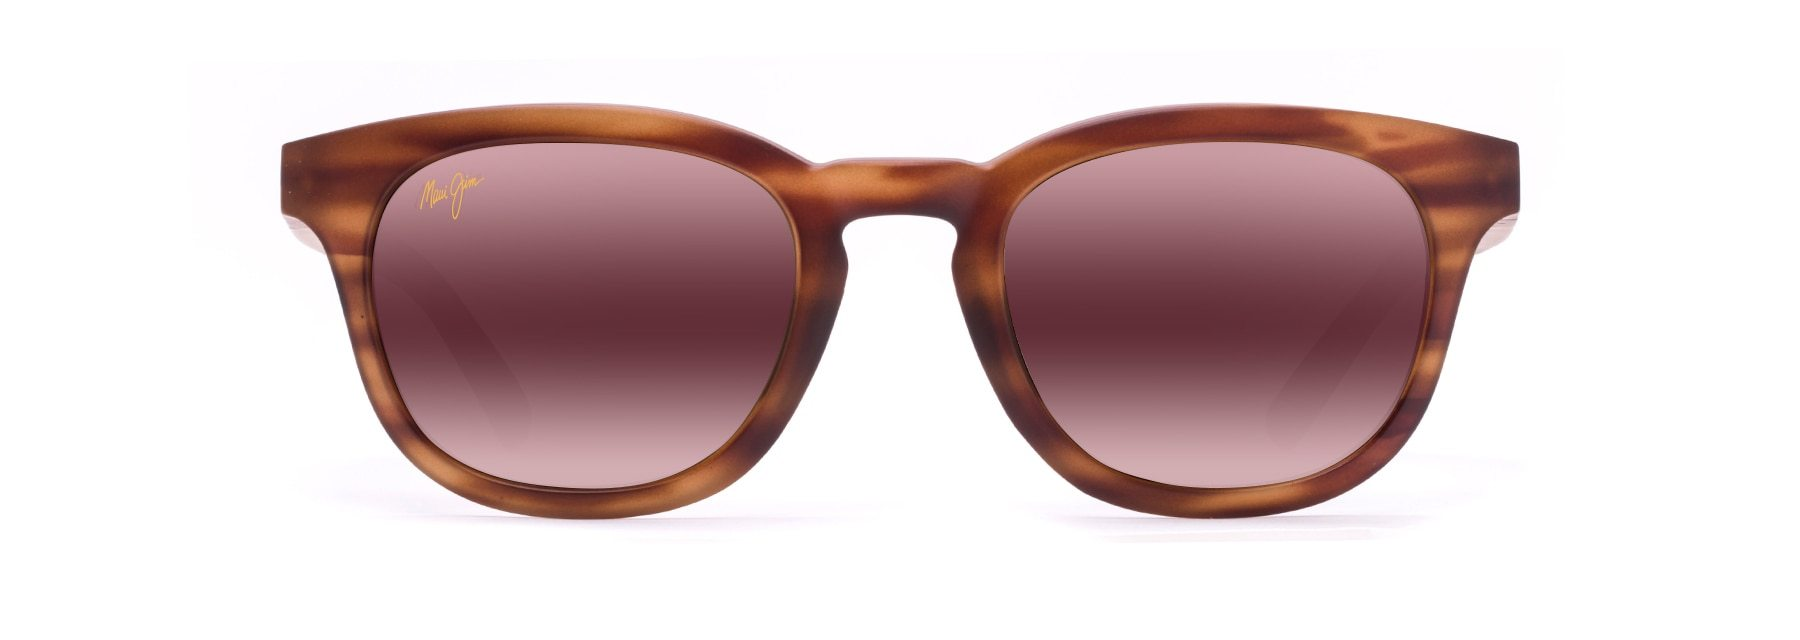 MyMaui Koko Head MM737-010 Sunglasses